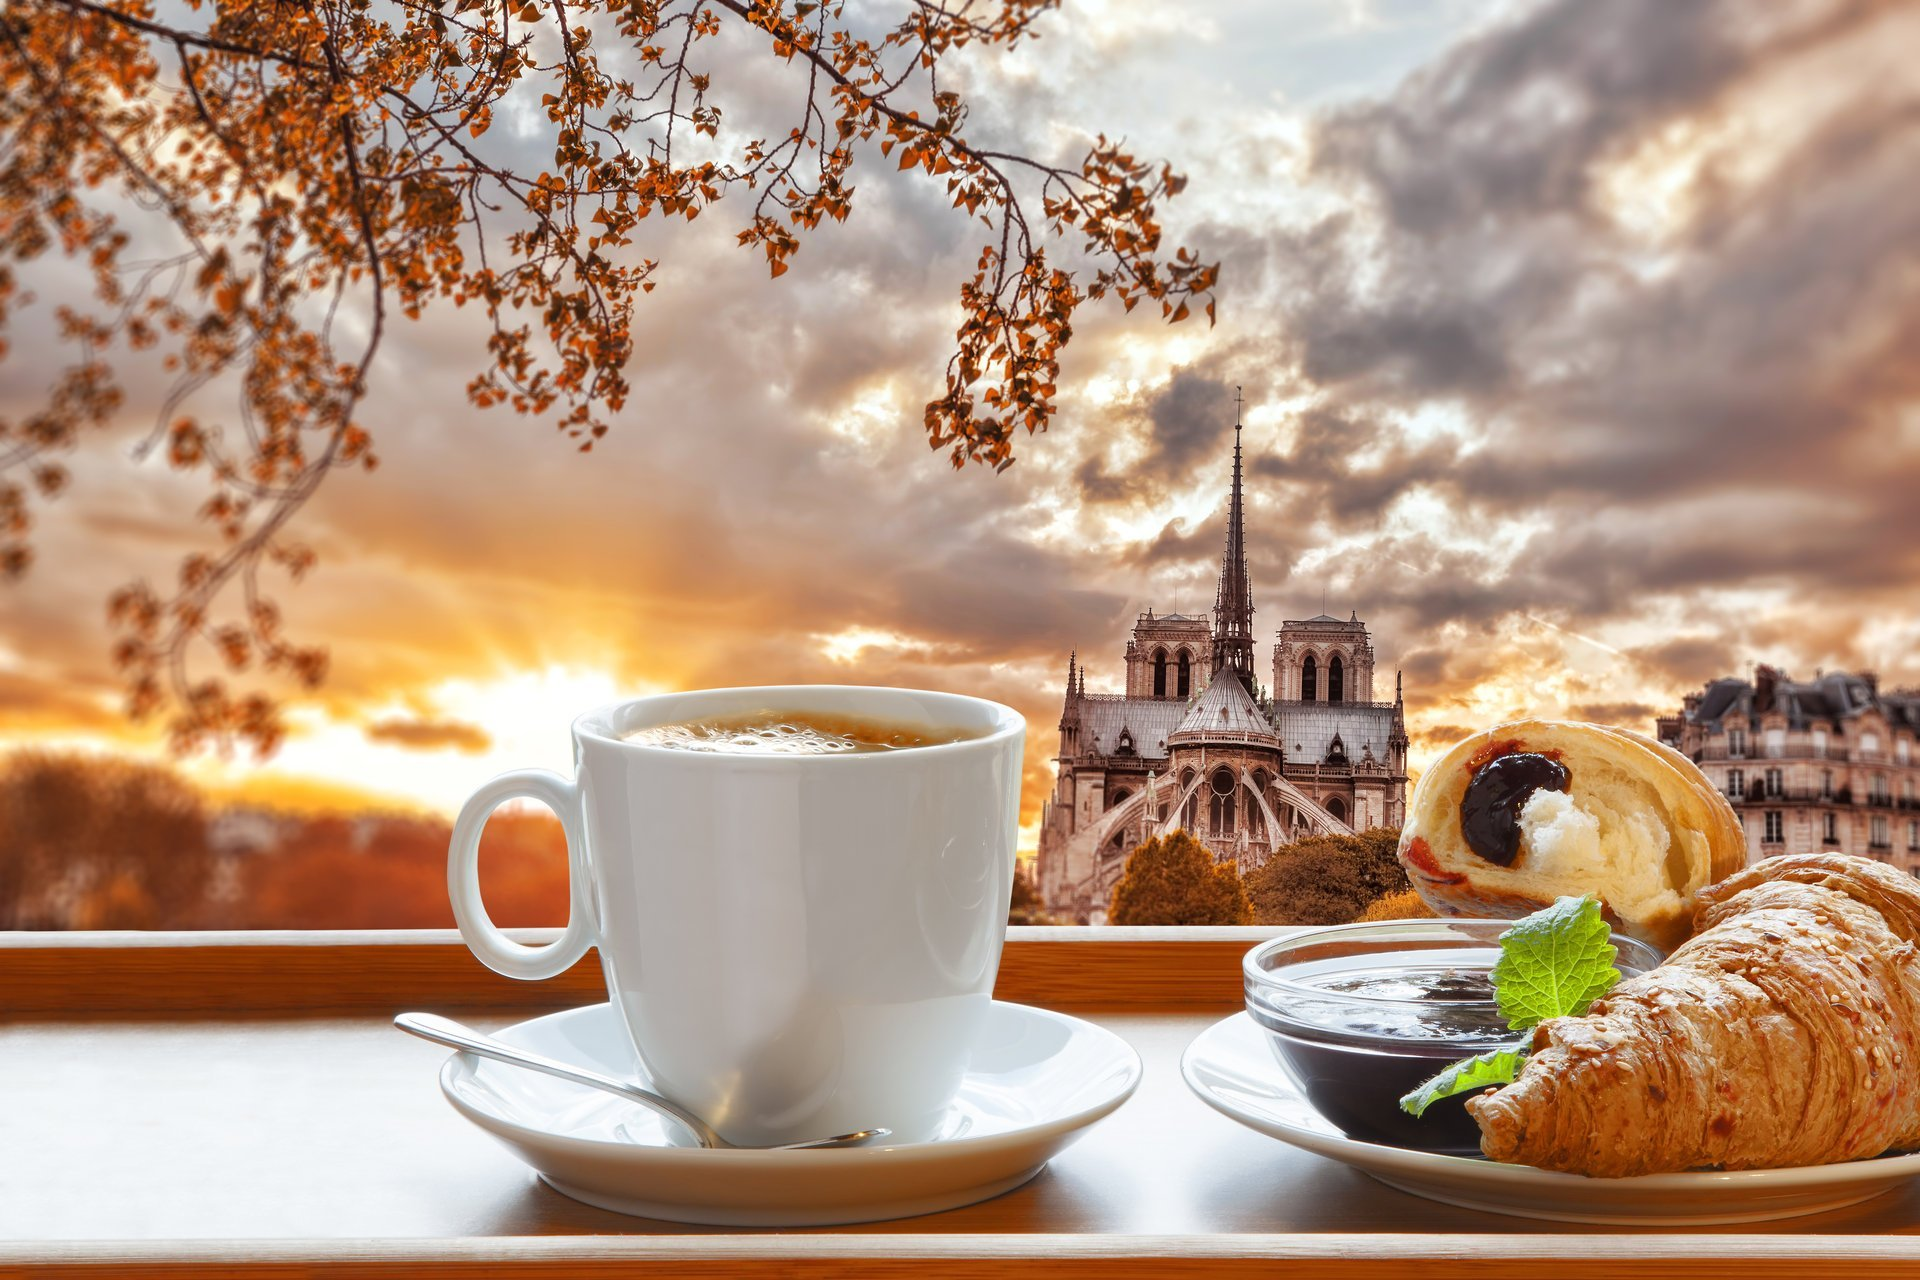 http://1001idea.info/wp-content/uploads/2016/10/breakfast-coffee-cup-croissant-paris-france-notre-dame-cathedral-breakfast-coffee-croissant-jam-paris-notre-dame.jpg